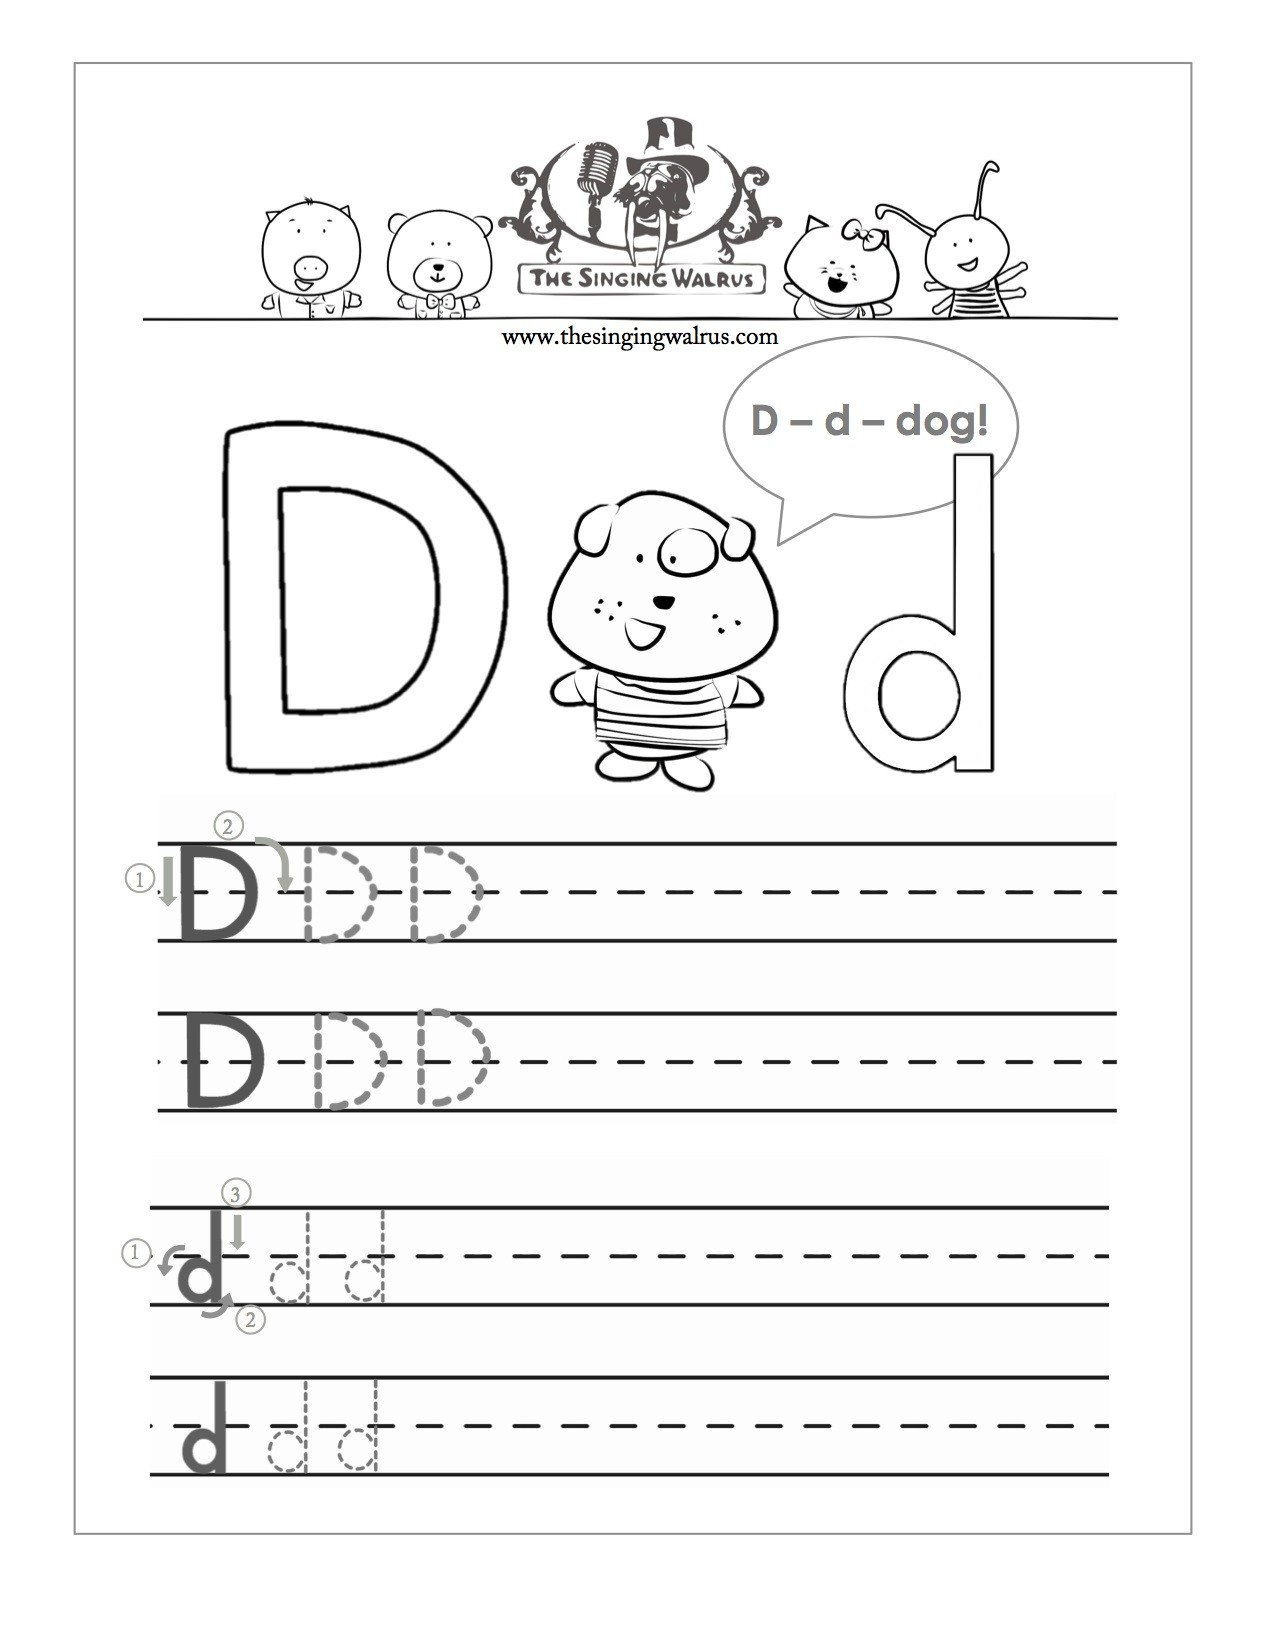 26 Learner Friendly Letter D Worksheets